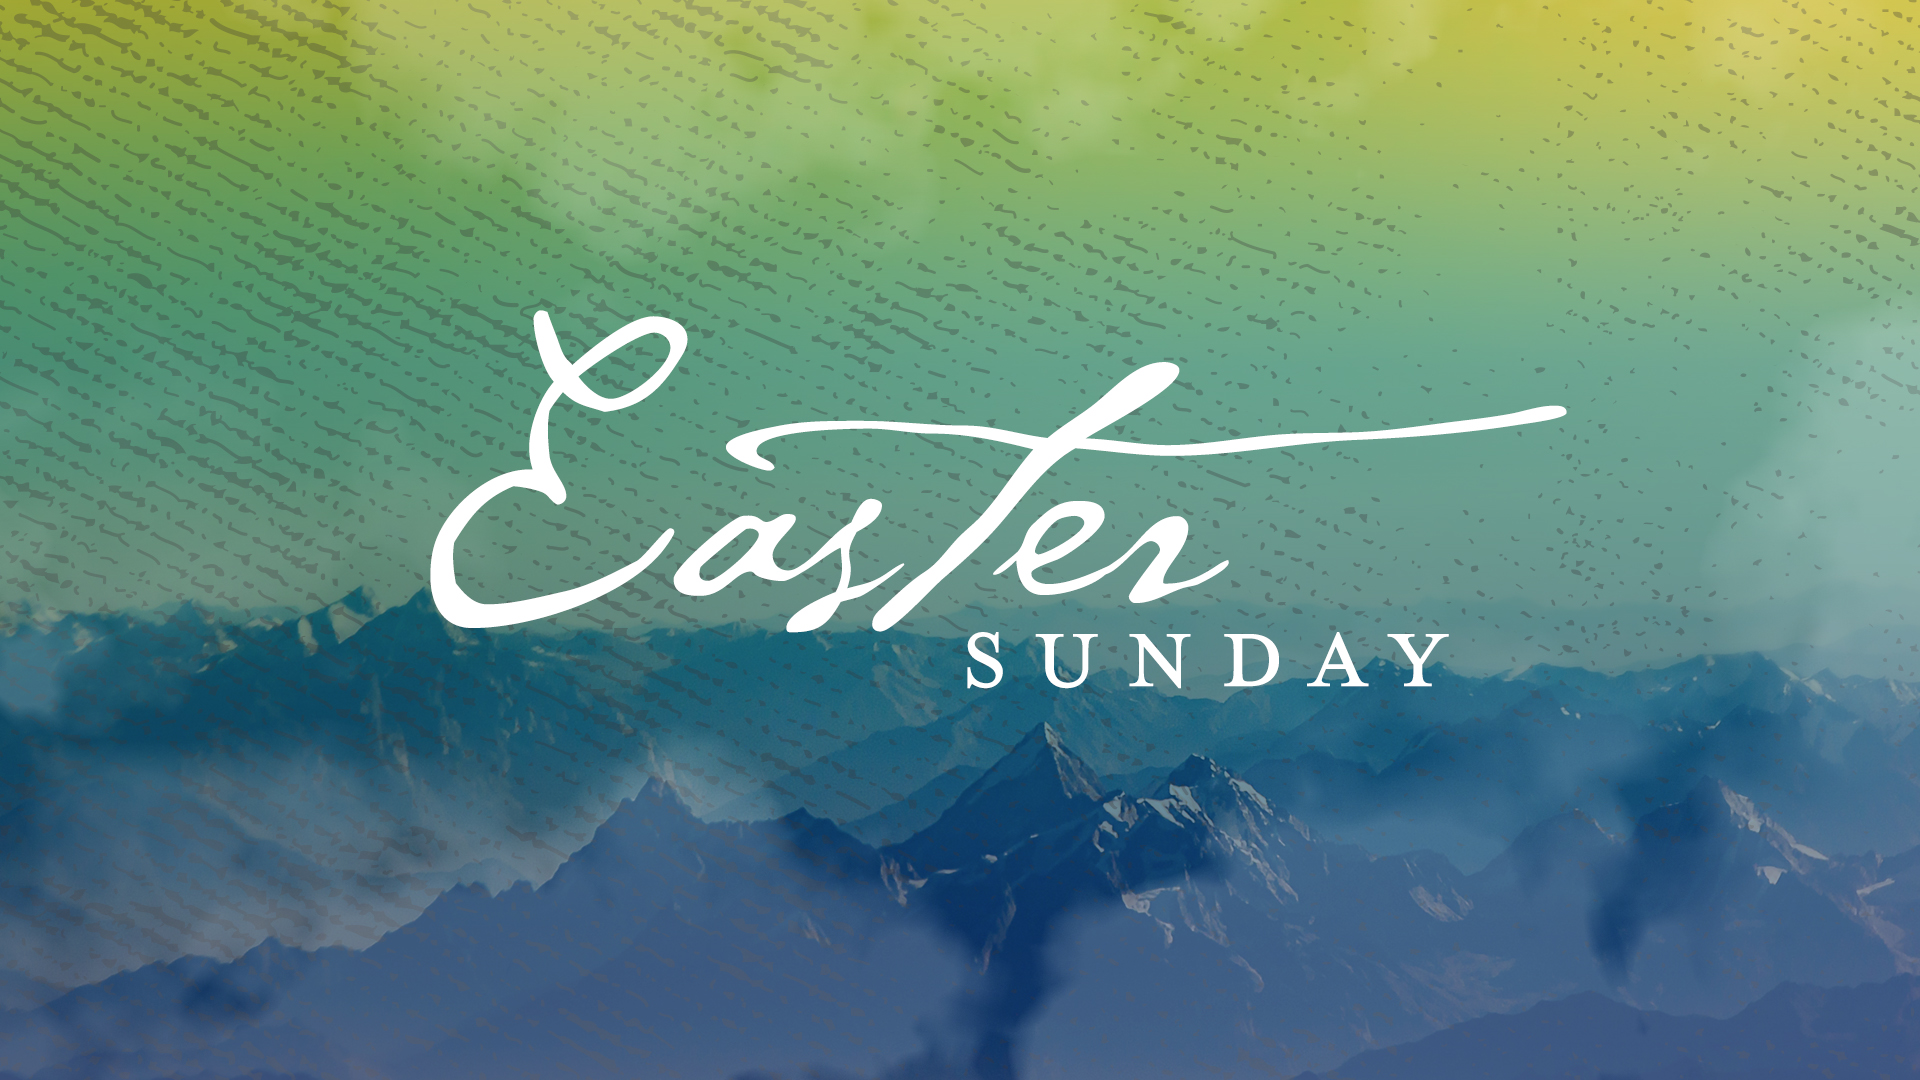 Easter Sunday 2020 Image